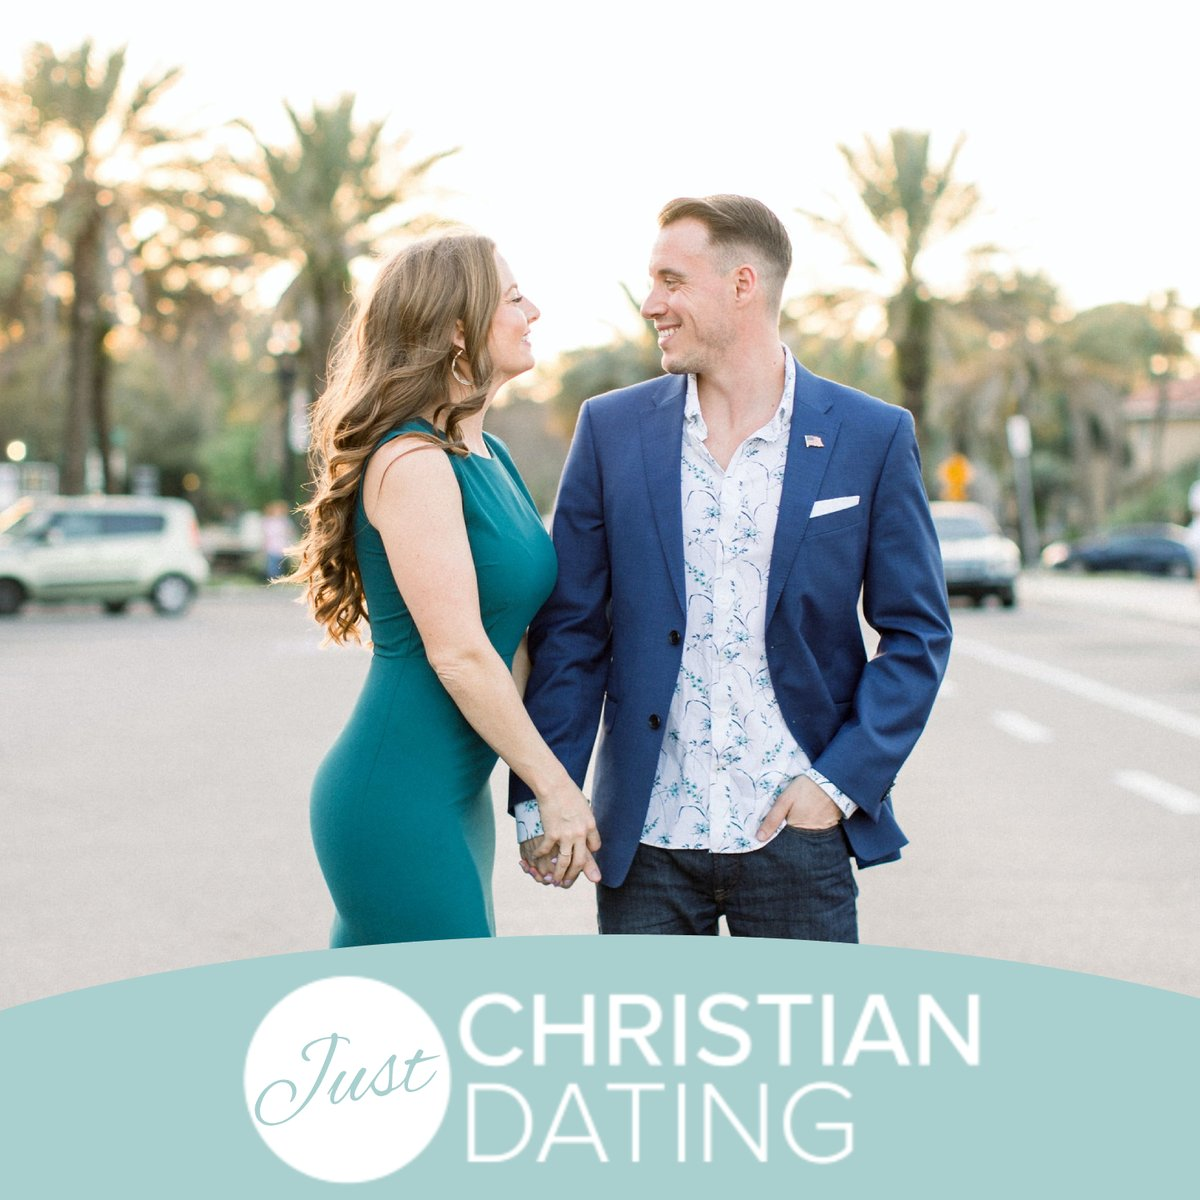 just christian dating.com